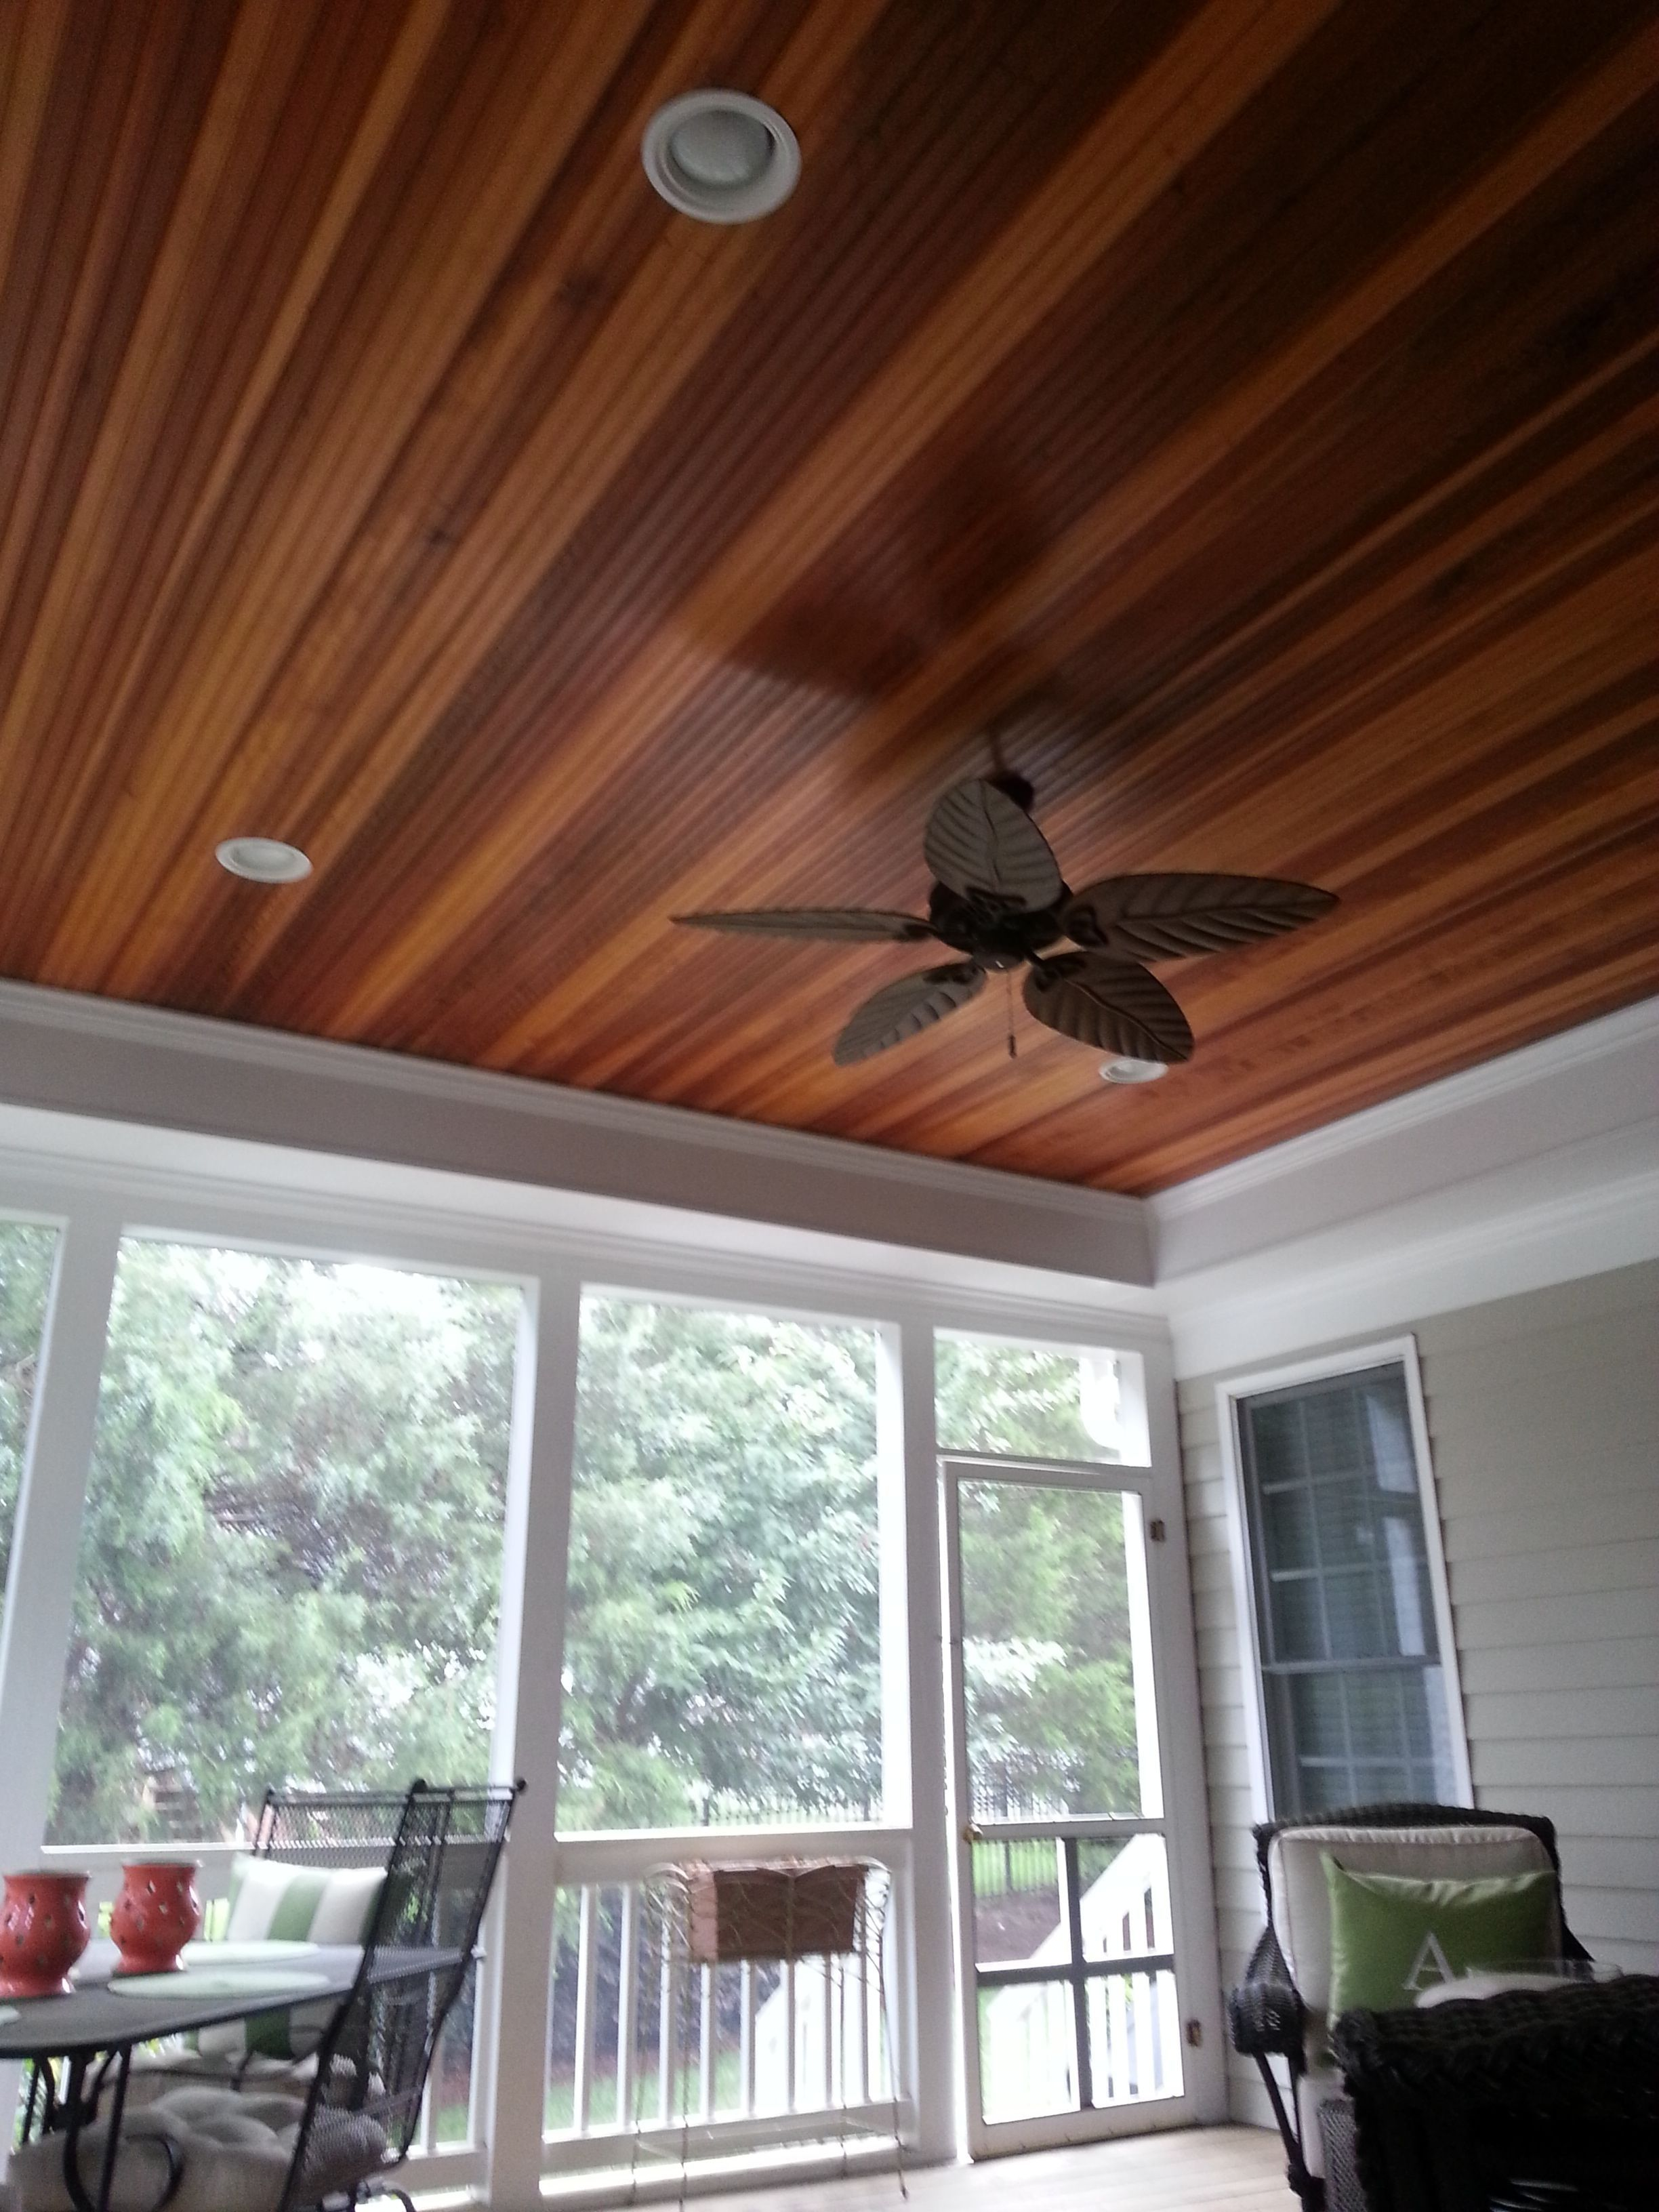 A Simple Guide To Patio Ceiling Ideas Bw02js Https Sanantoniohomeinspector Biz A Simple Guide To Patio Ceil Patio Ceiling Ideas Porch Ceiling Vinyl Beadboard